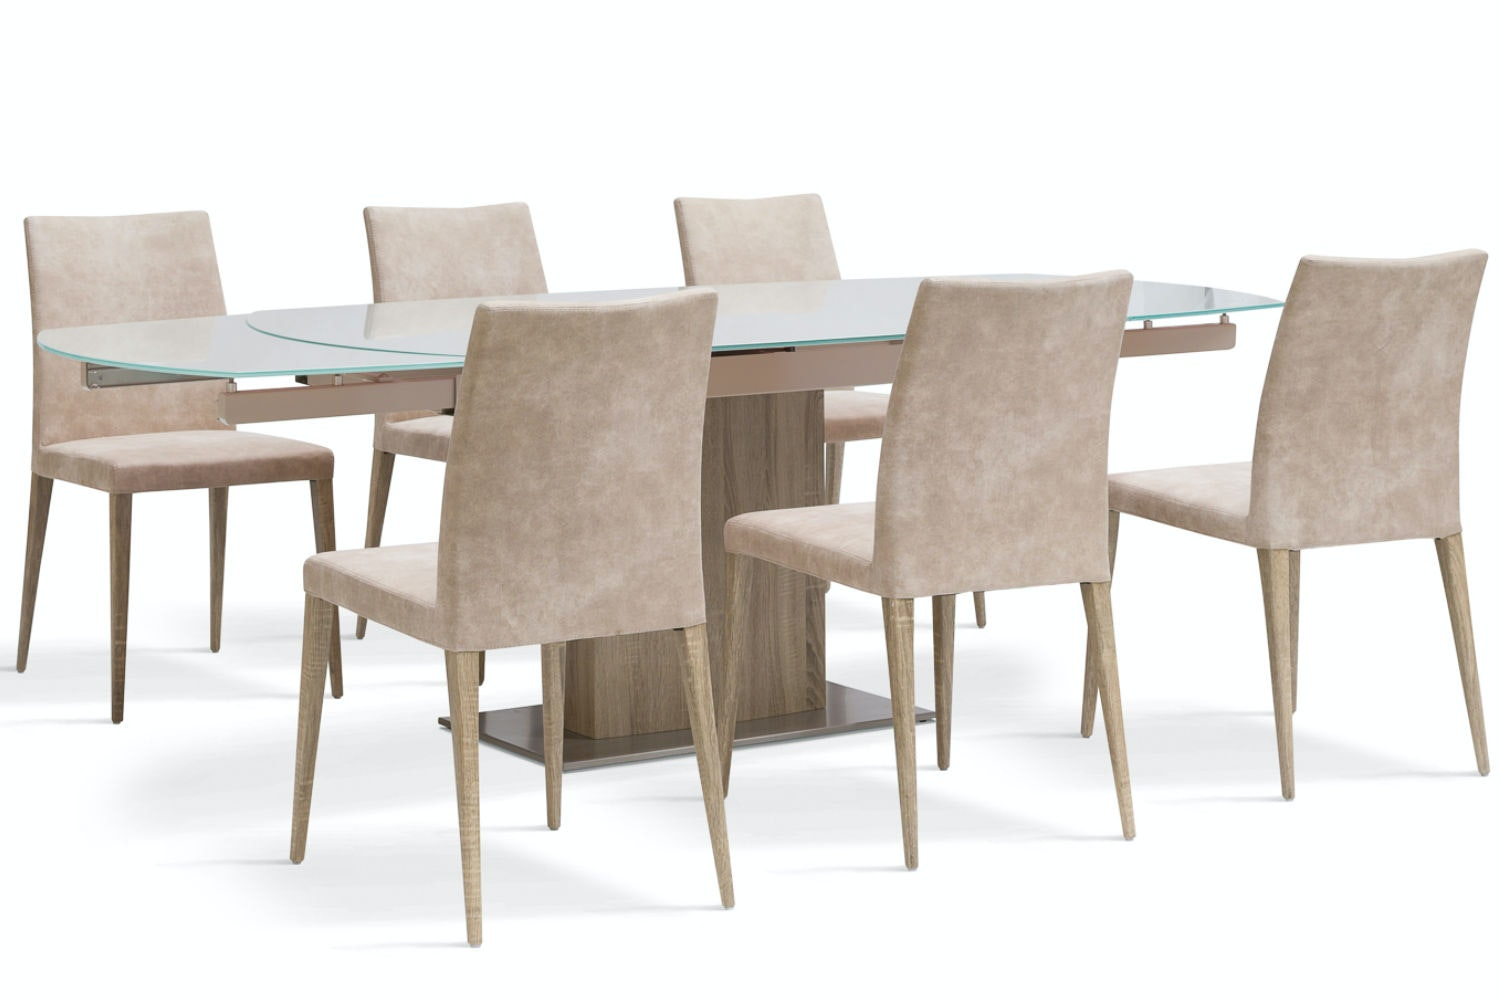 Lucci Light 7-Piece Dining Set | Low Calvino Dining Chairs